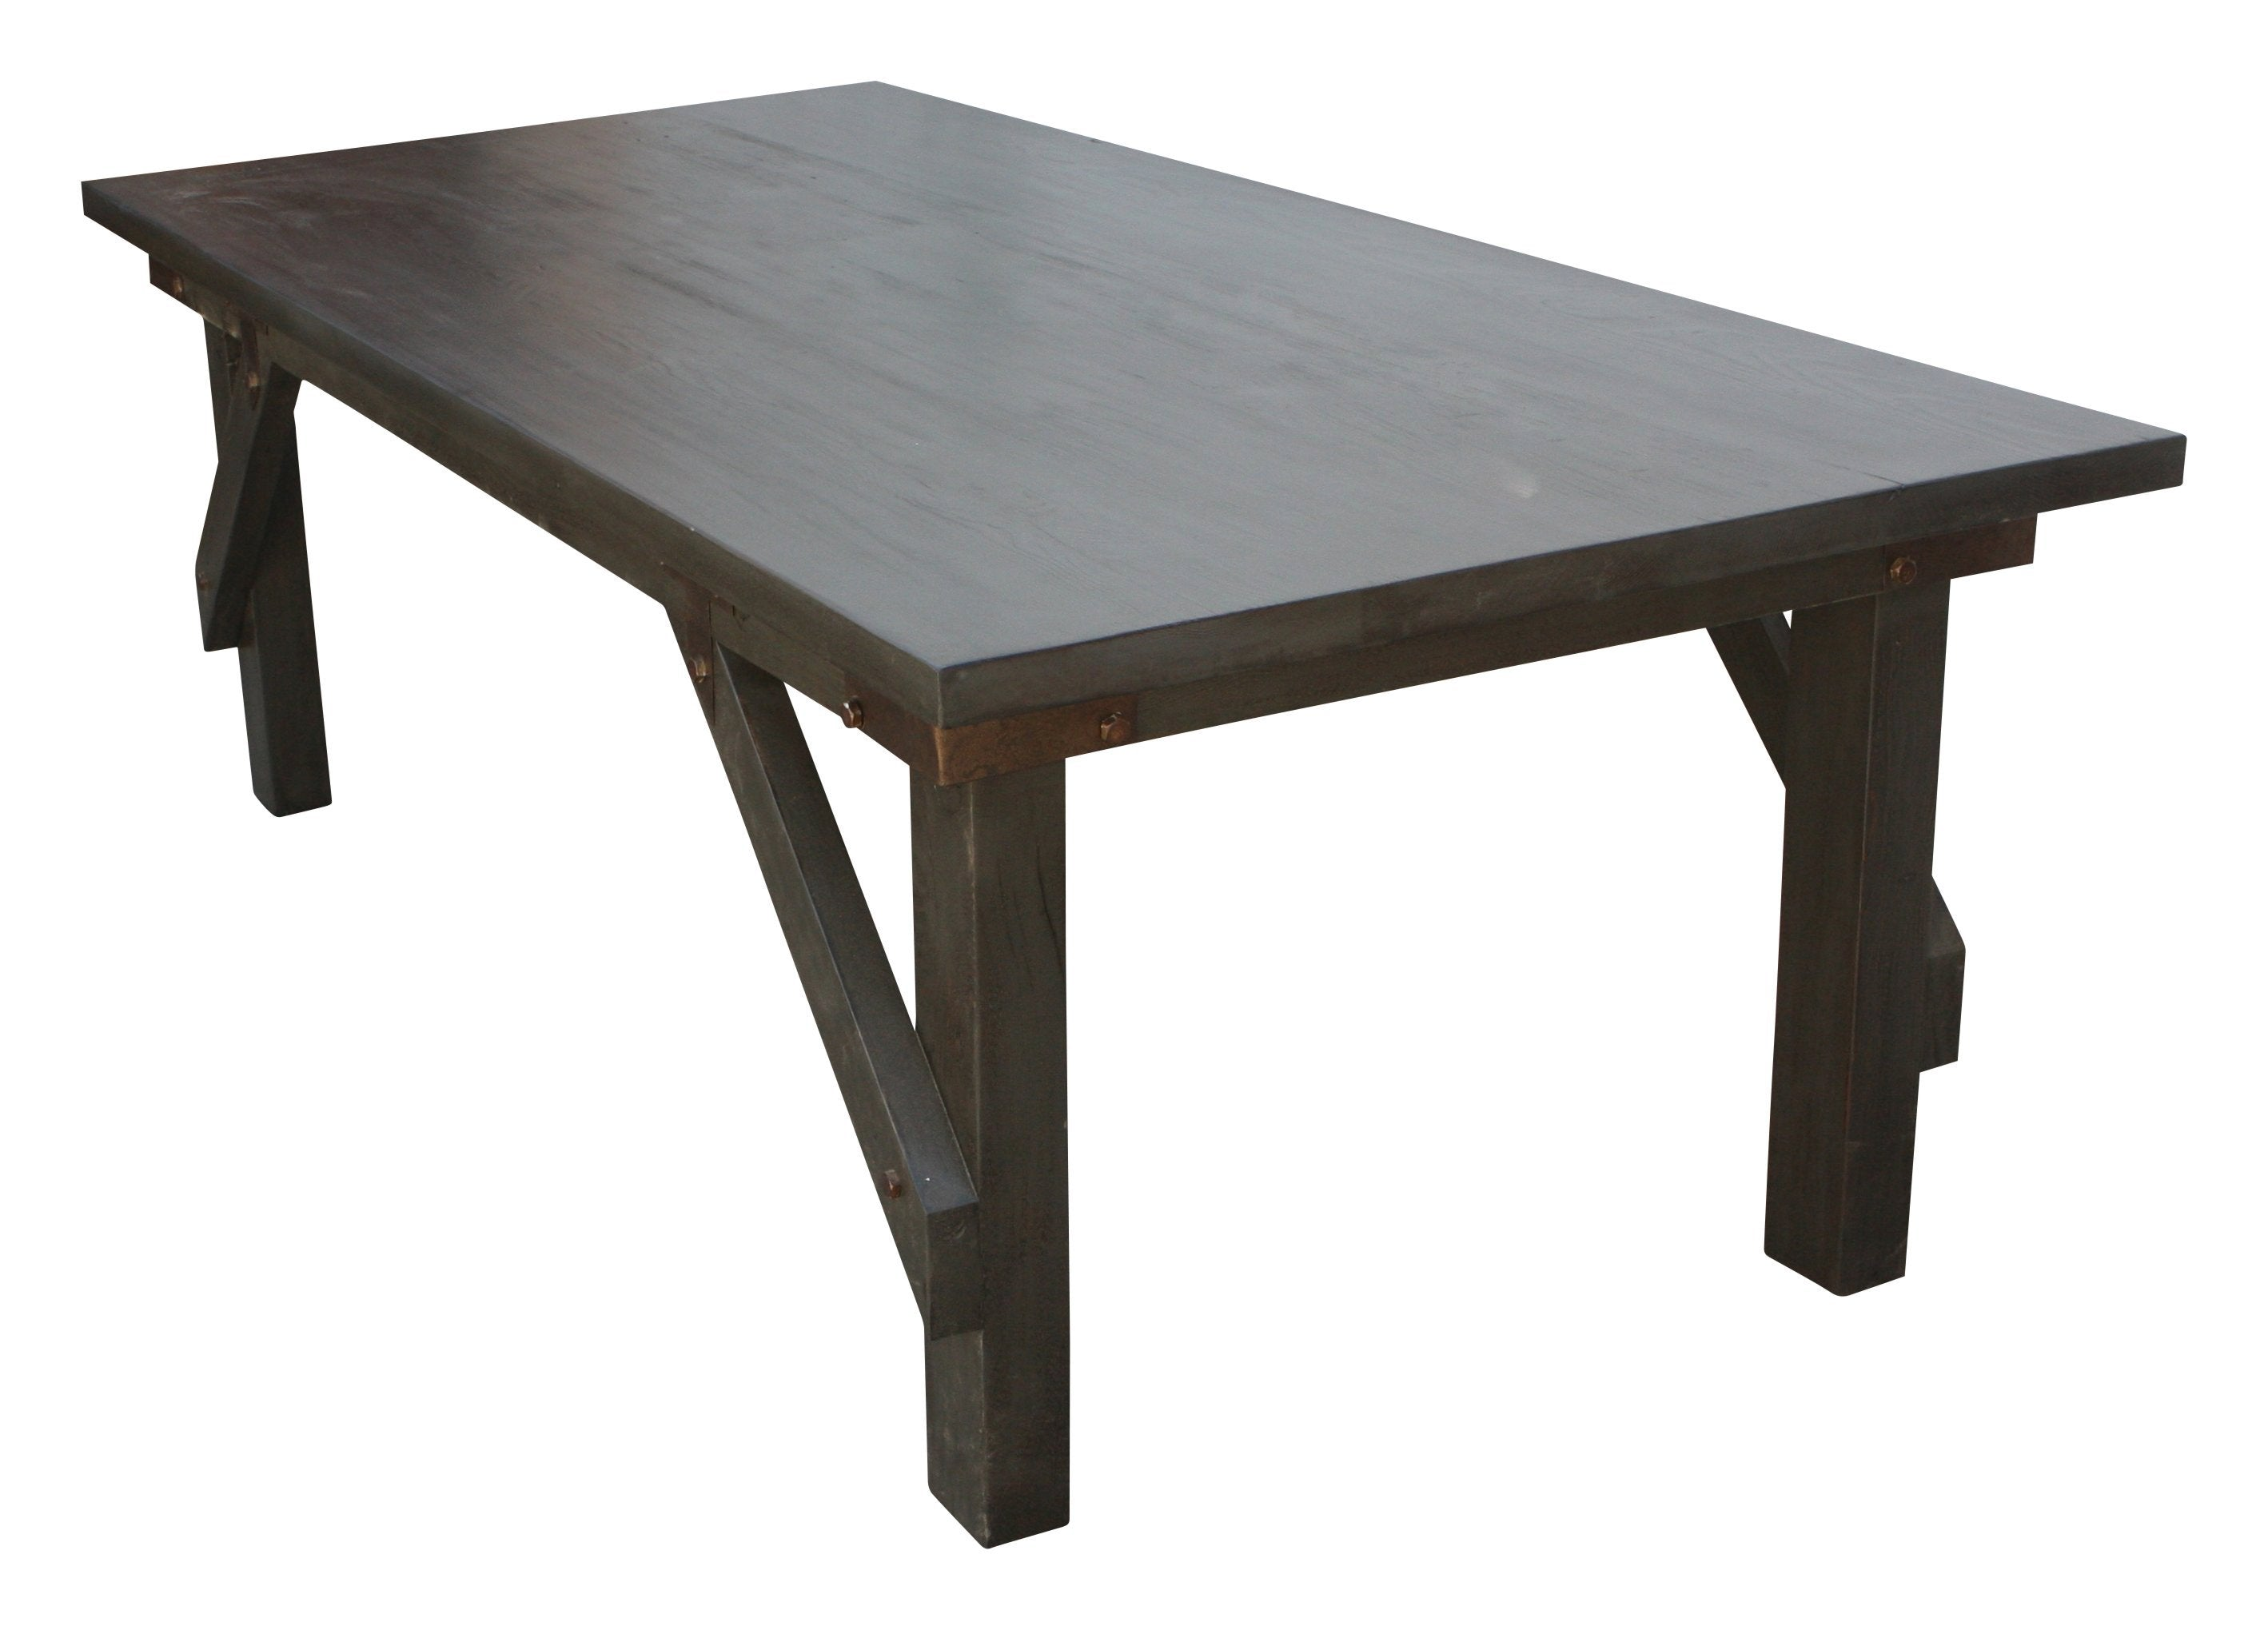 Industrial Work Bench Dining Table In Salvaged Wood Perfect For - Reclaimed wood work table